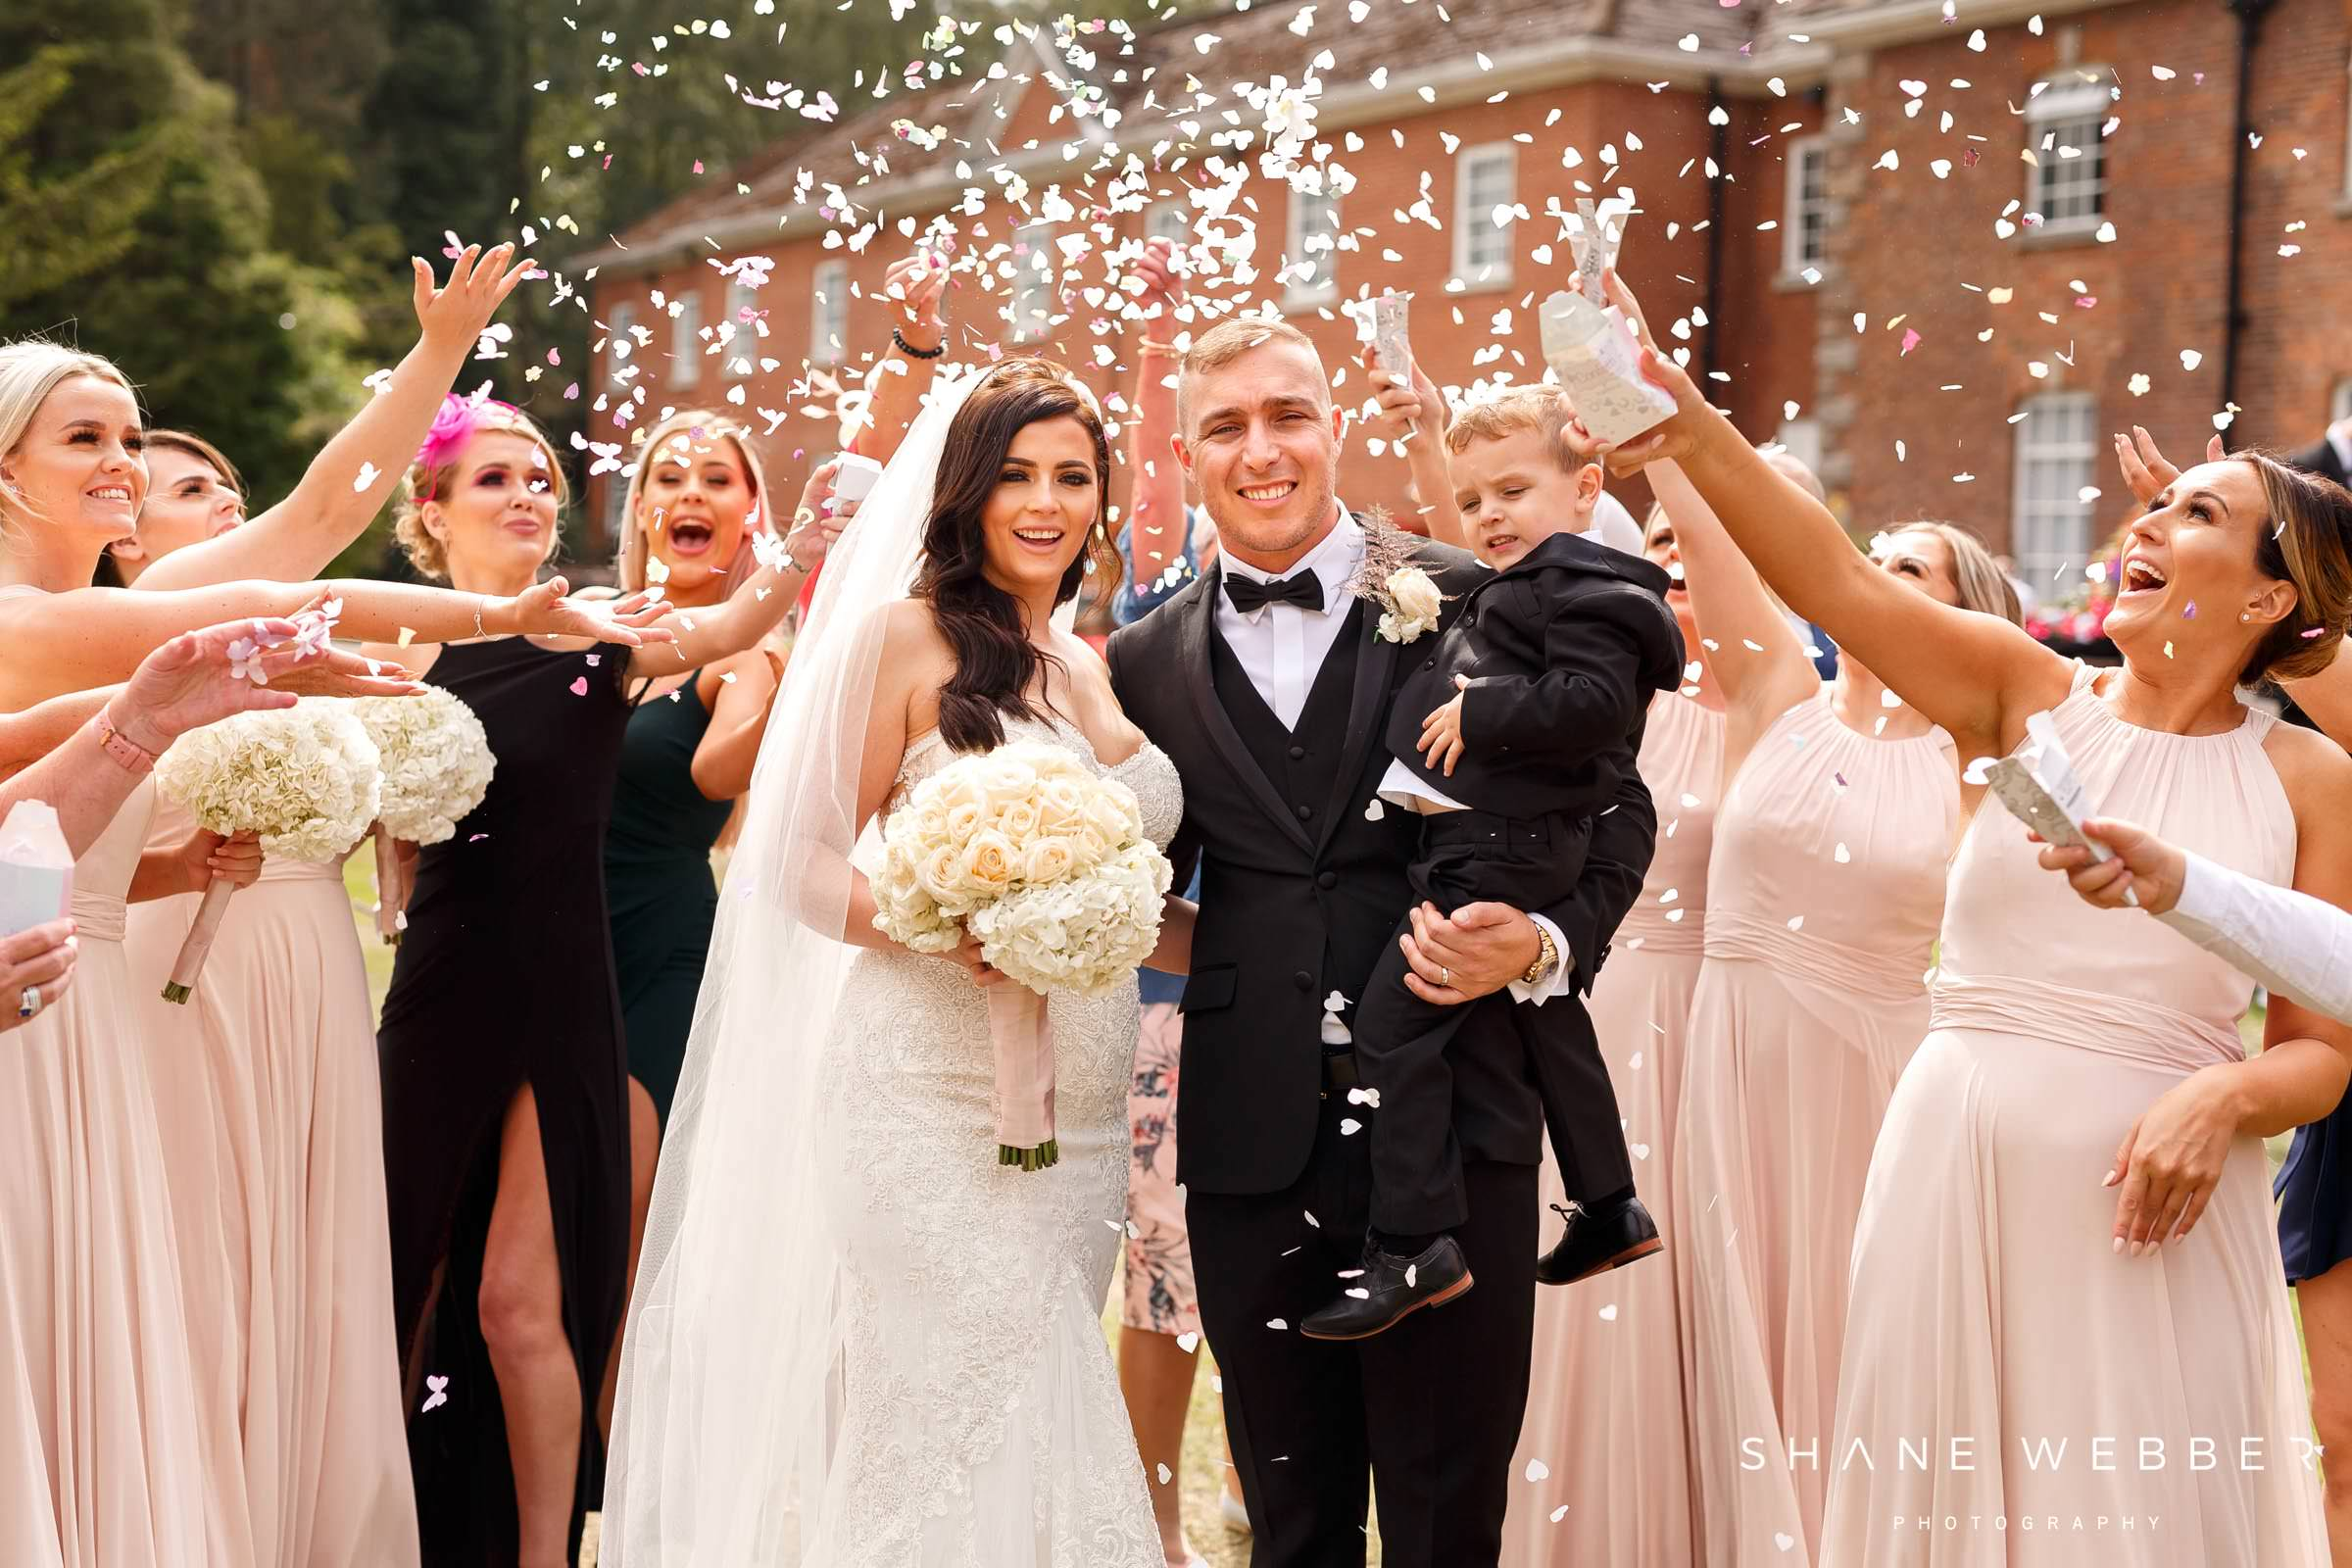 Mottram Hall confetti wedding photo